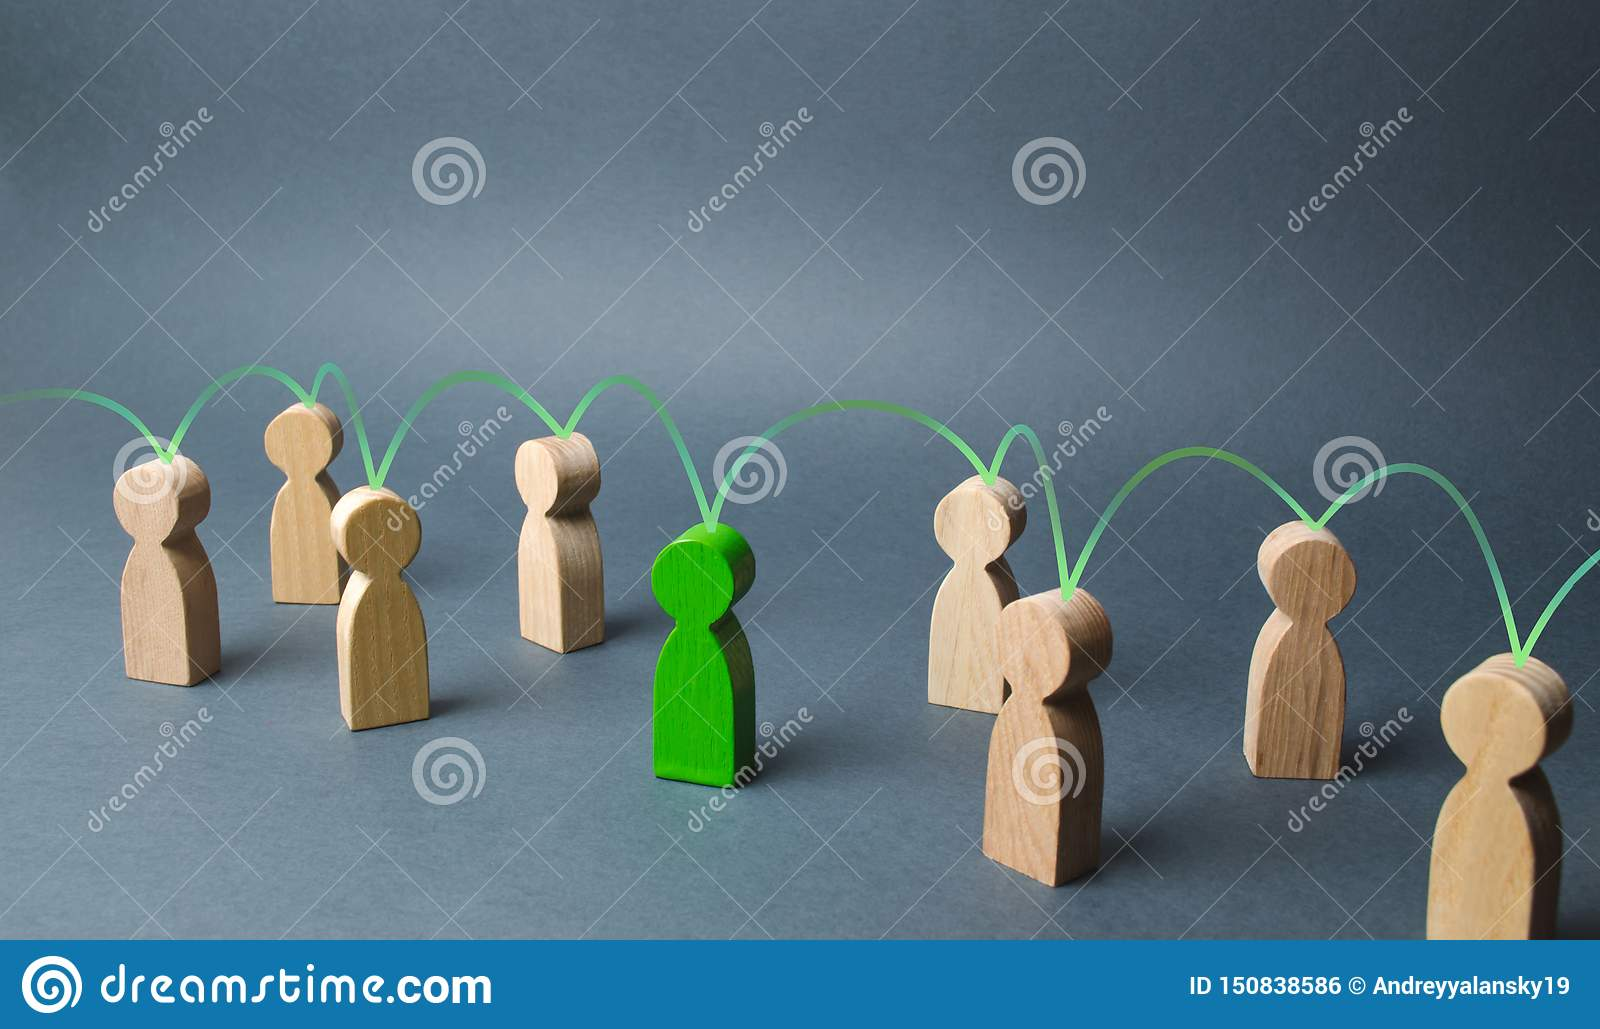 The green figure of a person unites other people around him. Social connections, communication. Organization. Call for cooperation